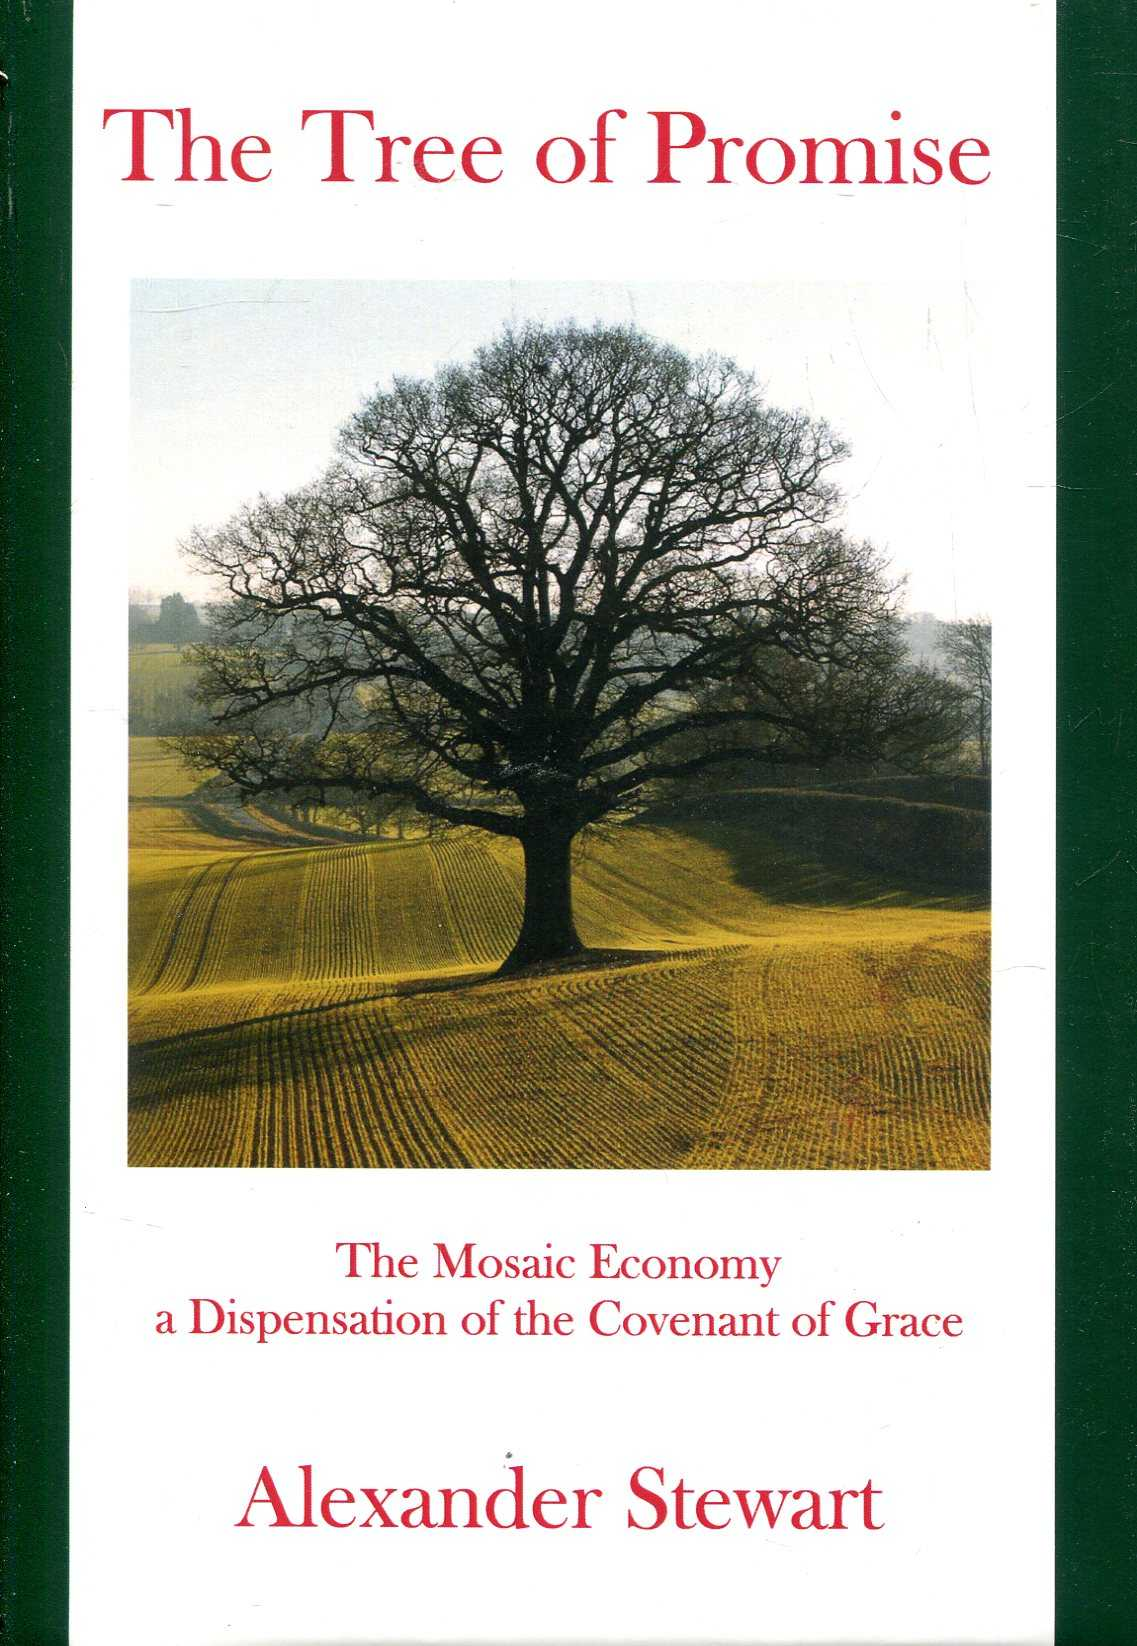 Image for The Tree of Promise: The Mosaic Economy a Dispensation of the Covenant of Grace